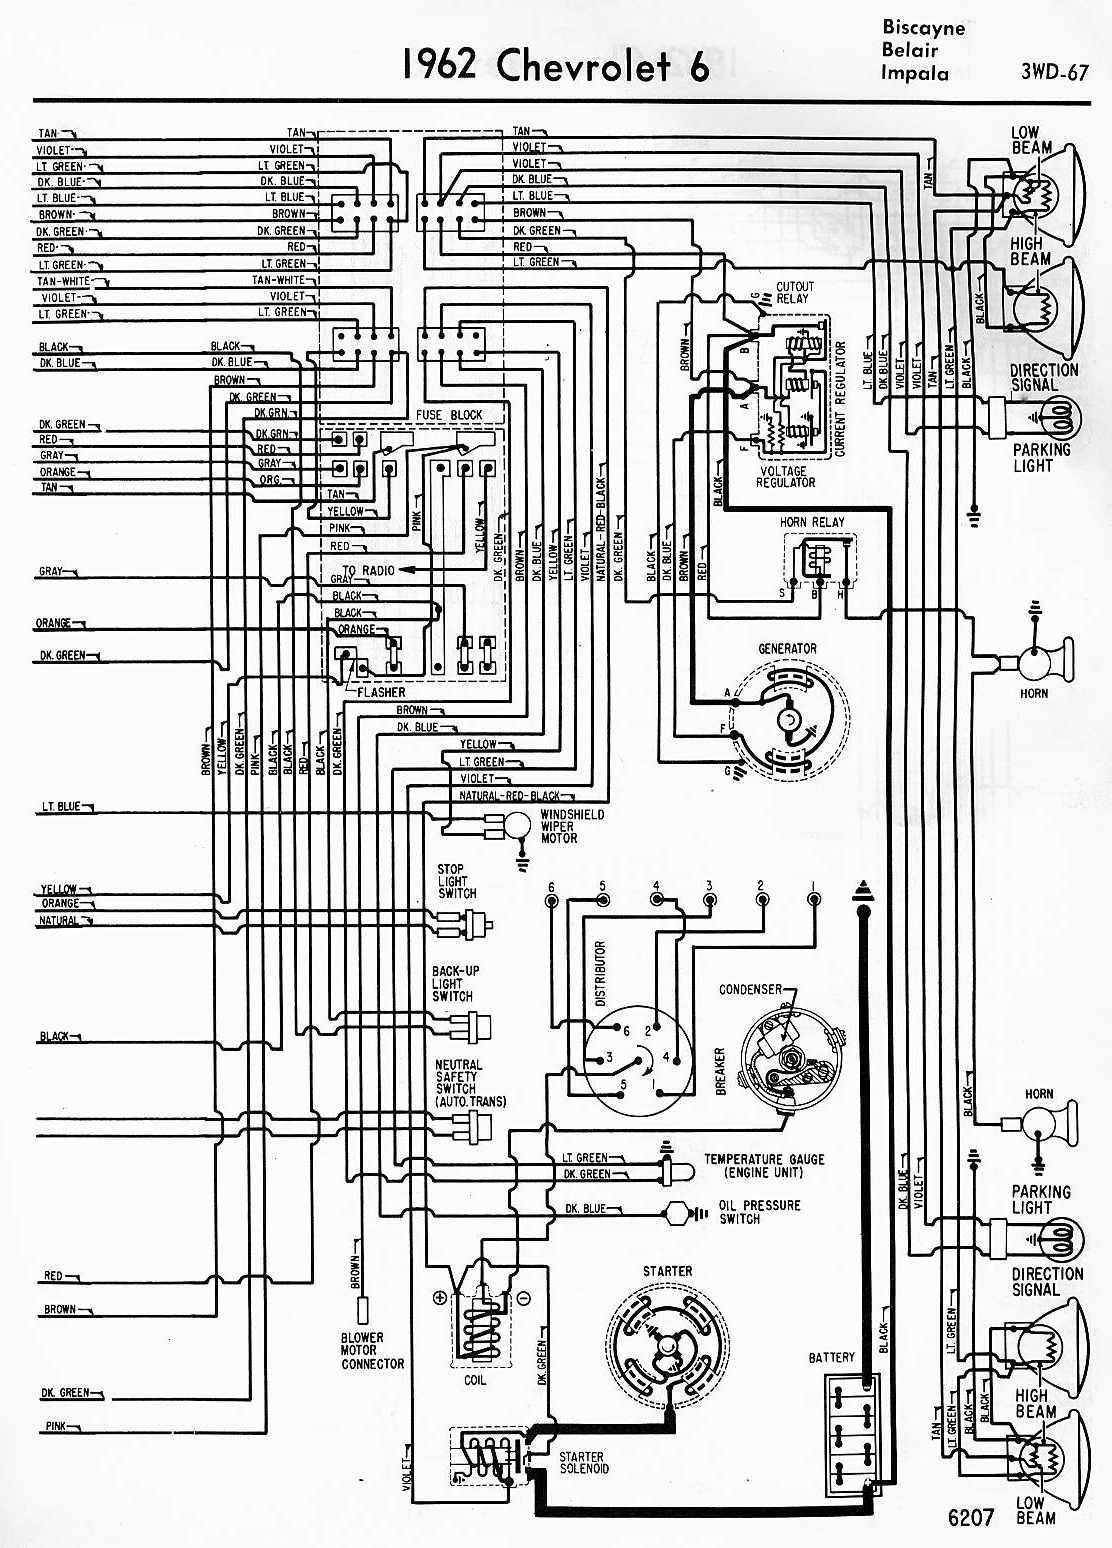 Electrical+Wiring+Diagram+Of+1964+Chevrolet+6 1964 chevy starter wiring diagram wiring diagram all data